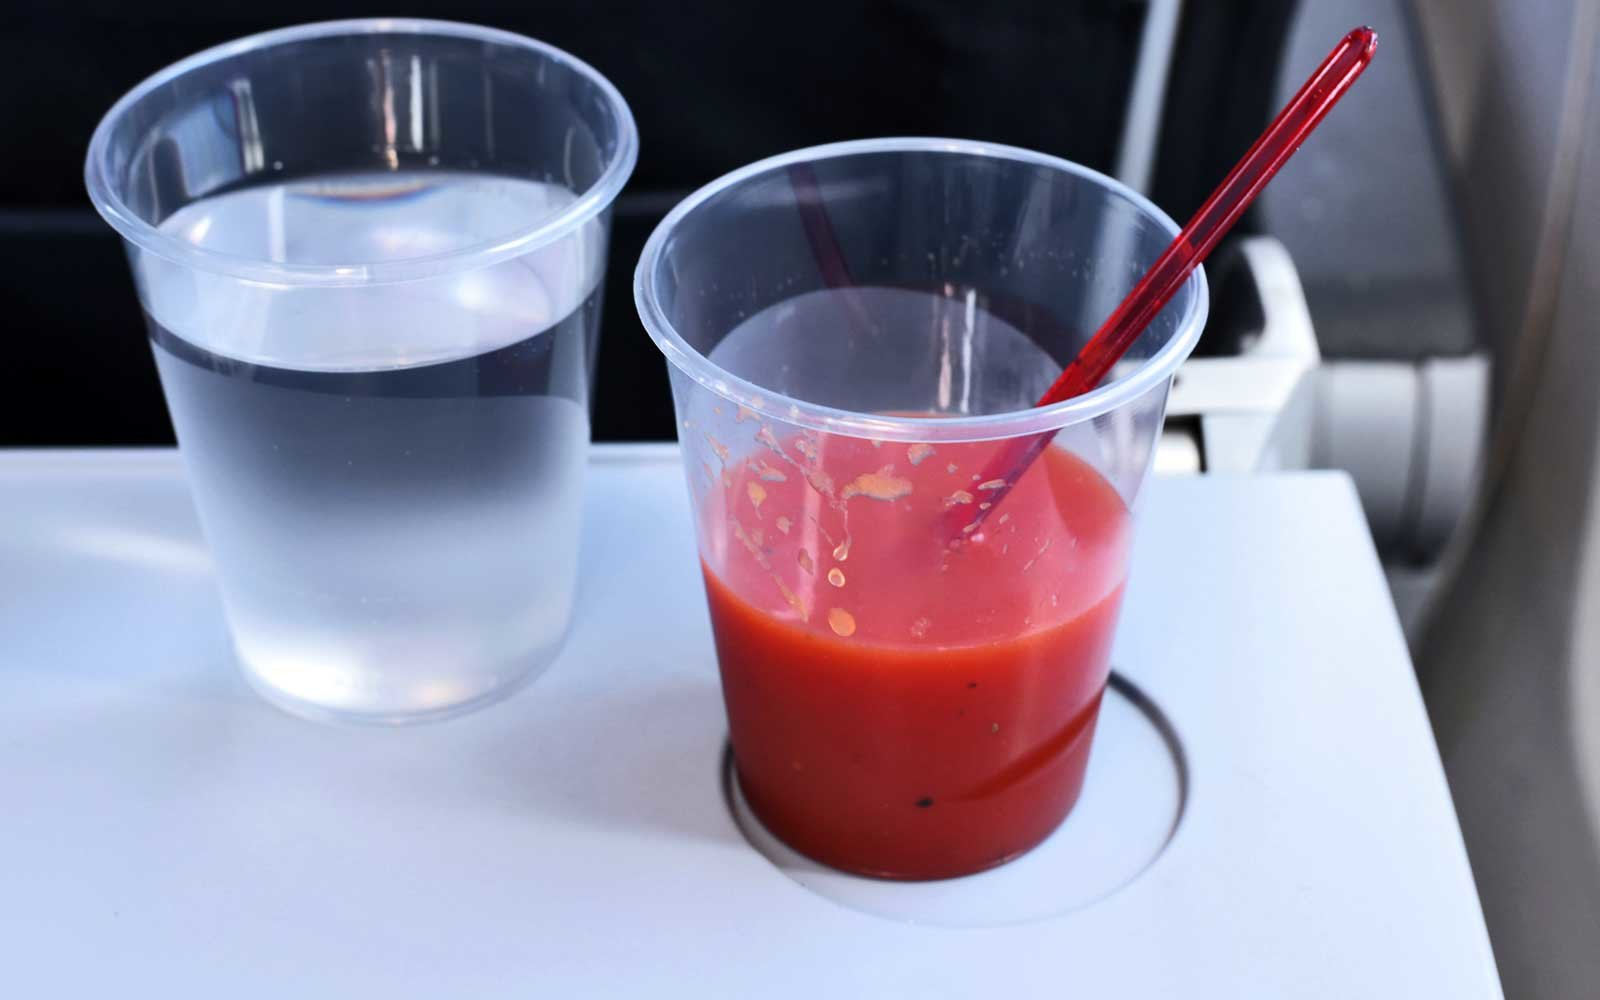 United reinstates tomato juice on flights after complaints